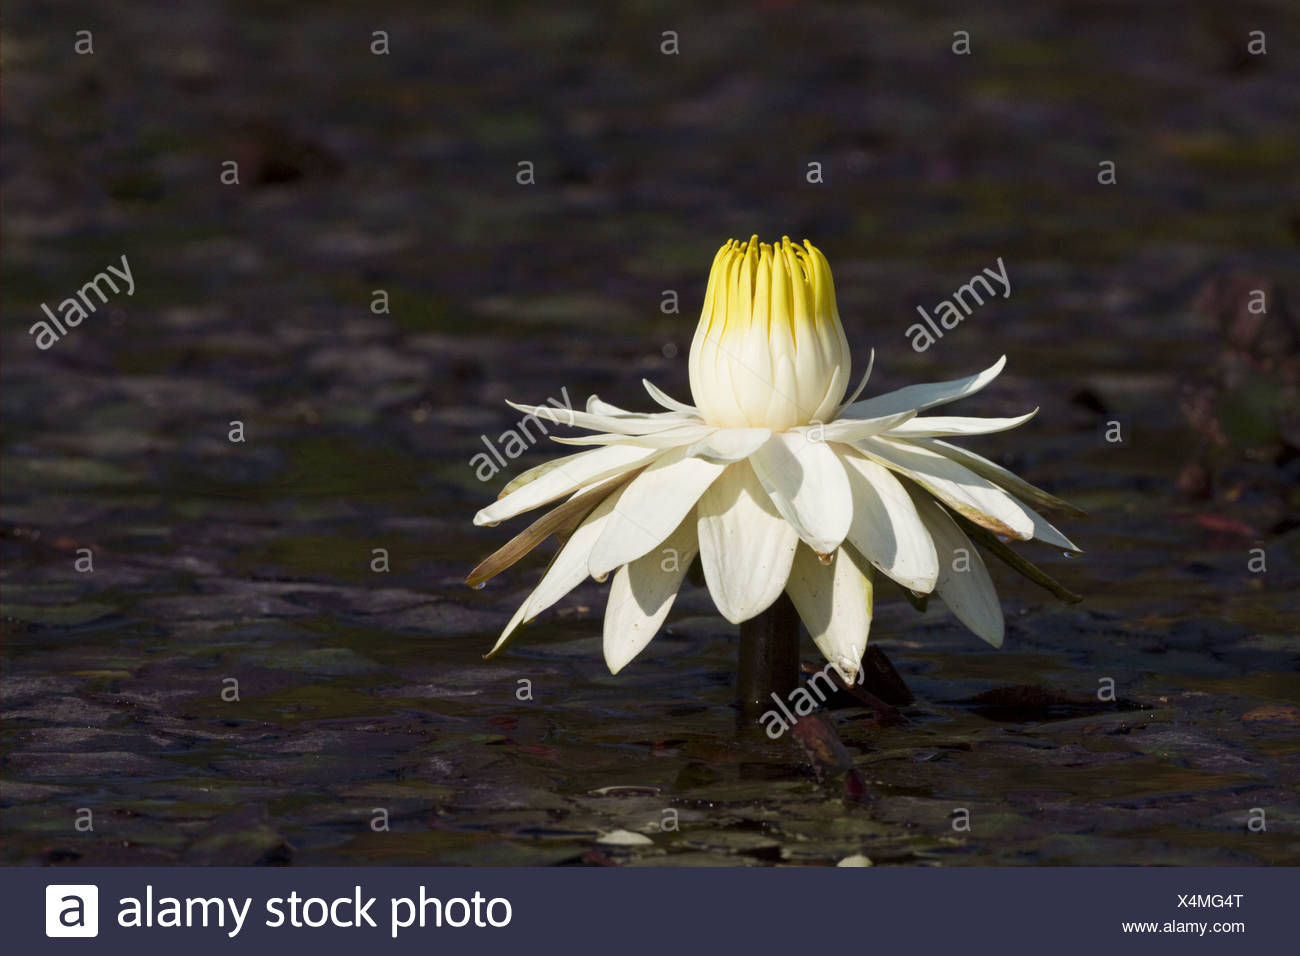 Night blooming waterlily nymphaea lotus flower fully open in late night blooming waterlily nymphaea lotus flower fully open in late afternoon okavango delta botswana izmirmasajfo